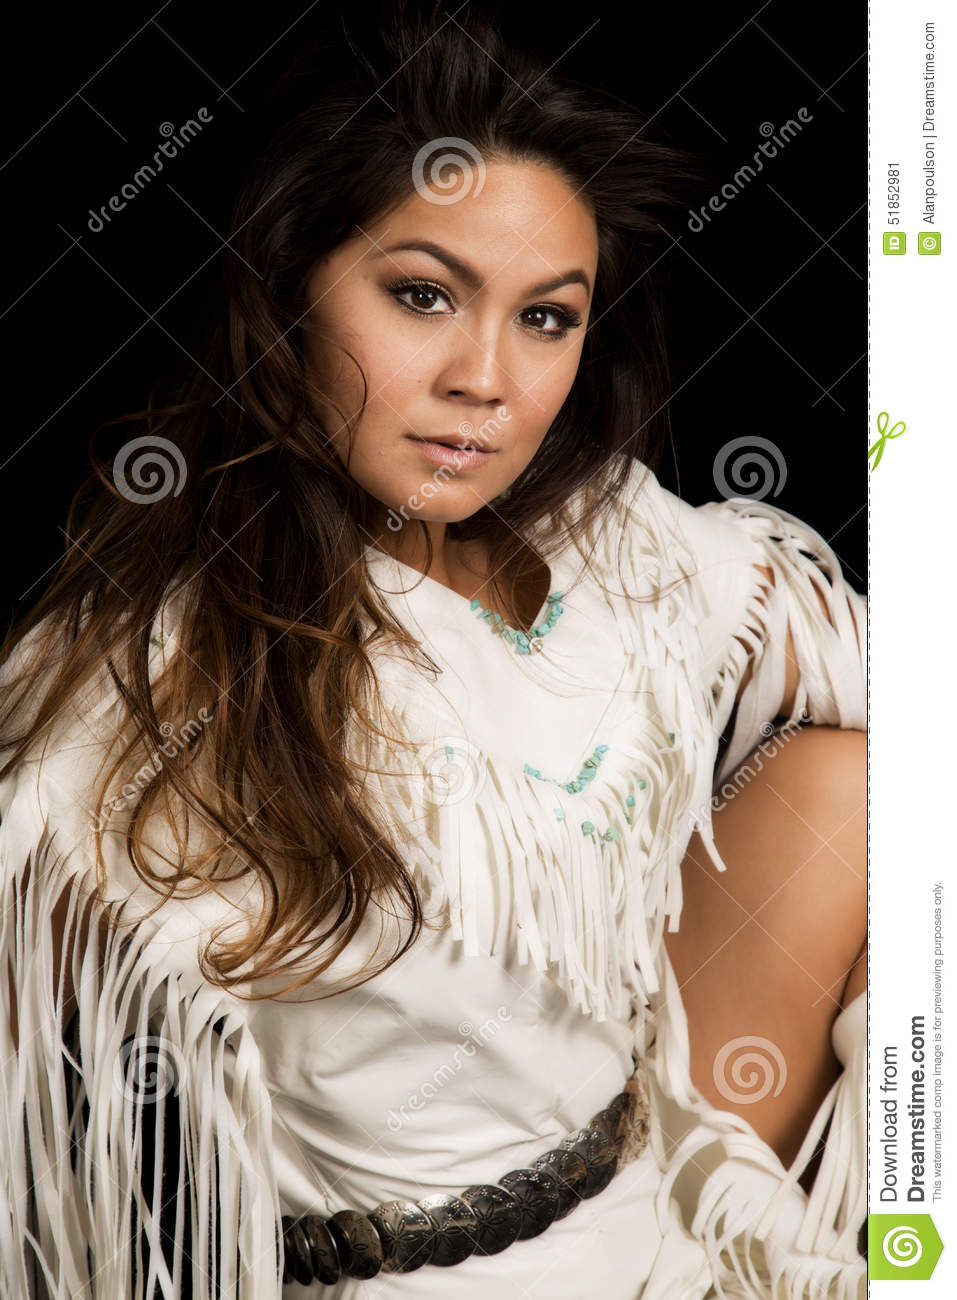 looking for native american women